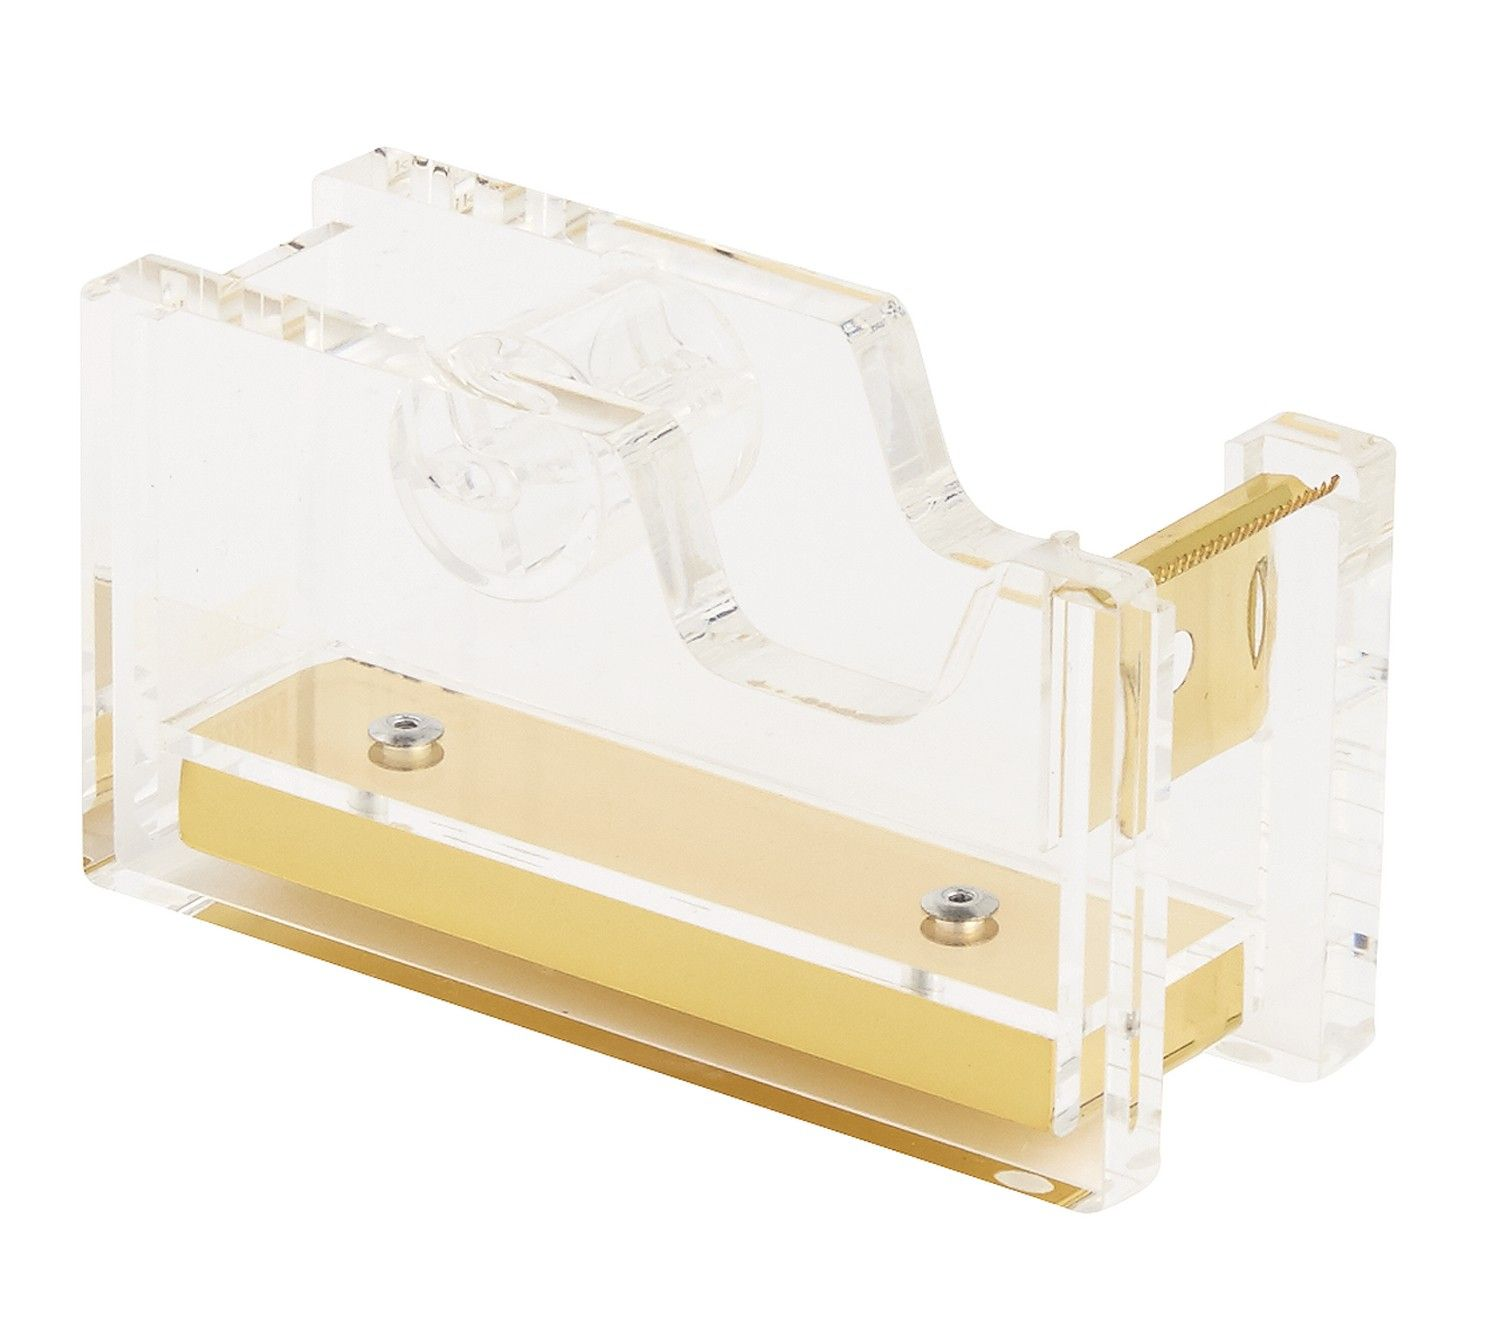 Matching Office Desk Accessories Acrylic Tape Dispenser Gold Accessories Tape